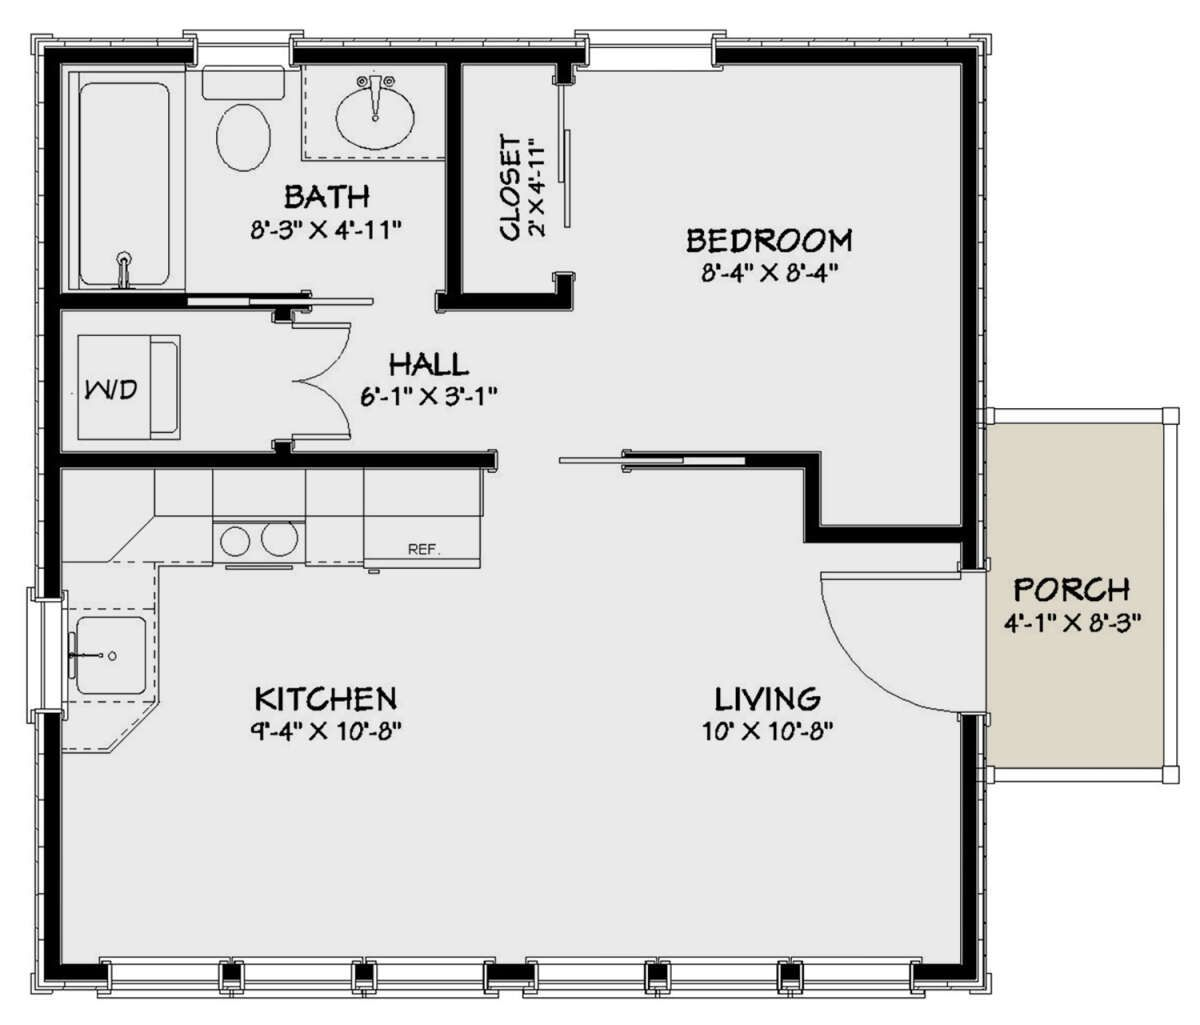 House Plan 1502 00003 Cottage Plan 400 Square Feet 1 Bedroom 1 Bathroom In 2020 Small House Floor Plans Tiny House Floor Plans House Plans